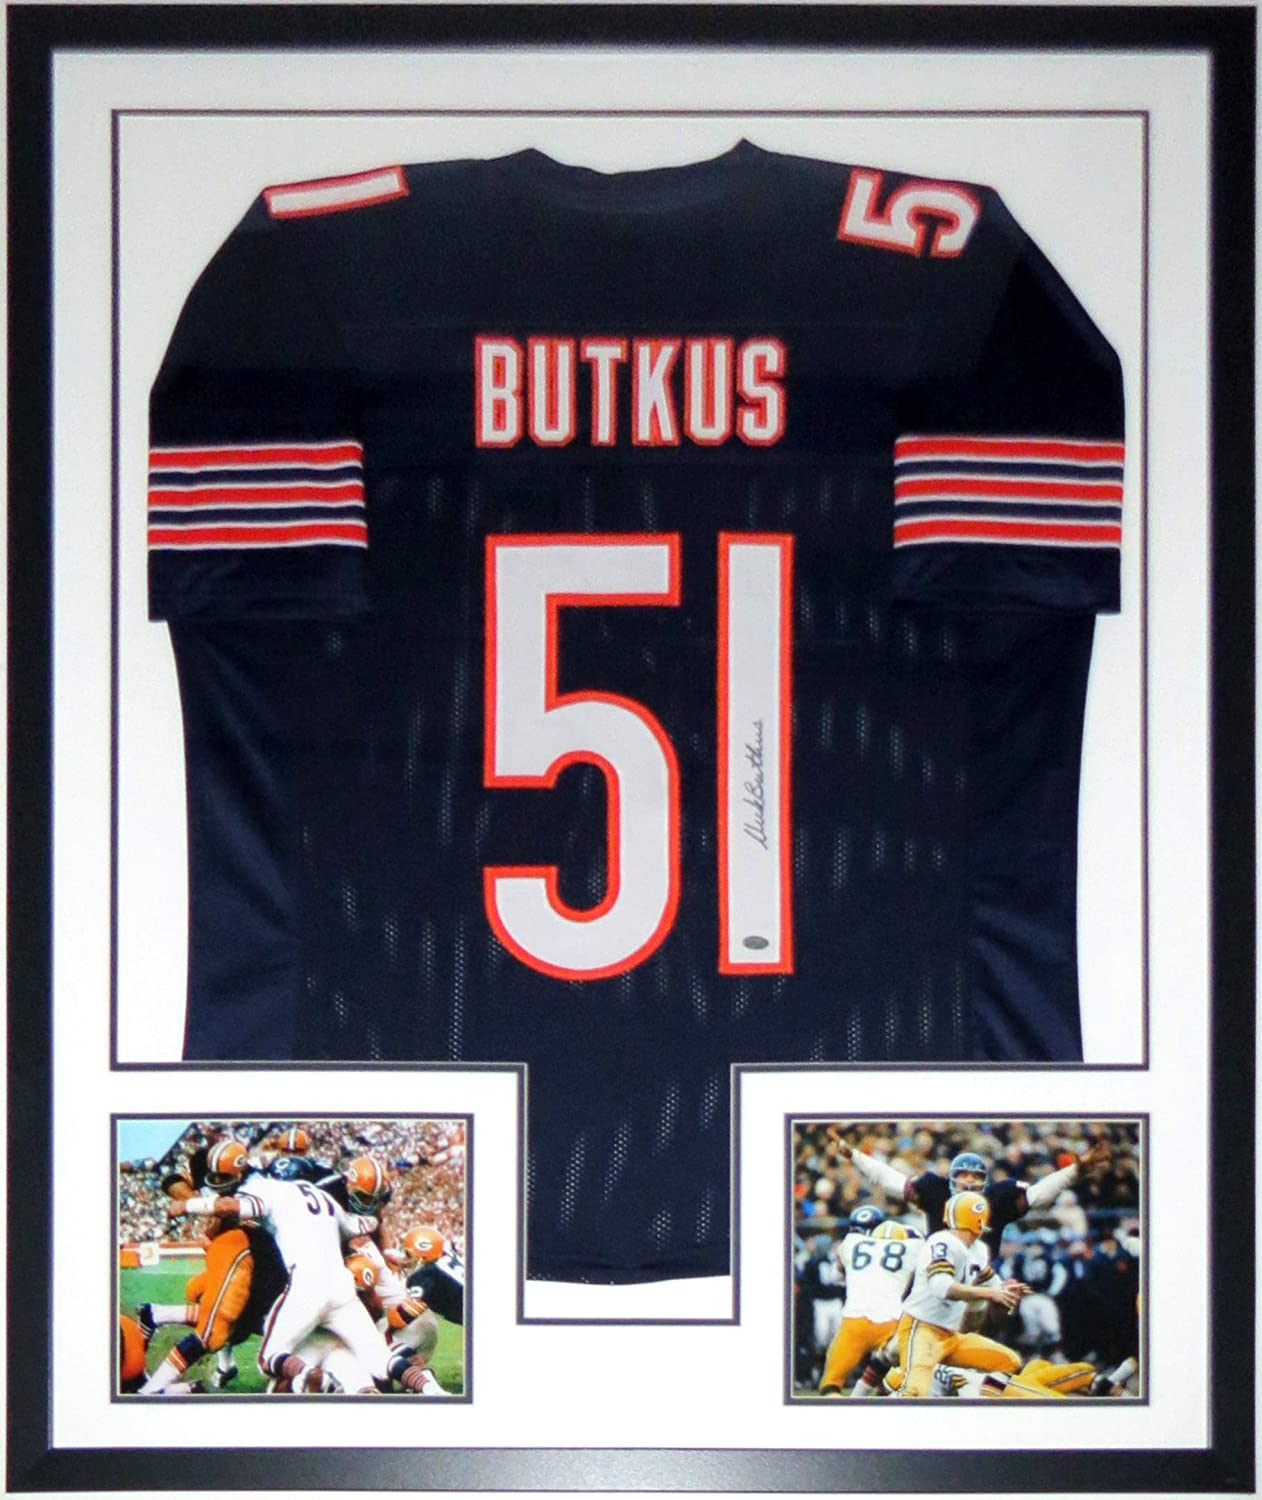 Dick Butkus Signed Authentic Chicago Bears Jersey - Mounted ...